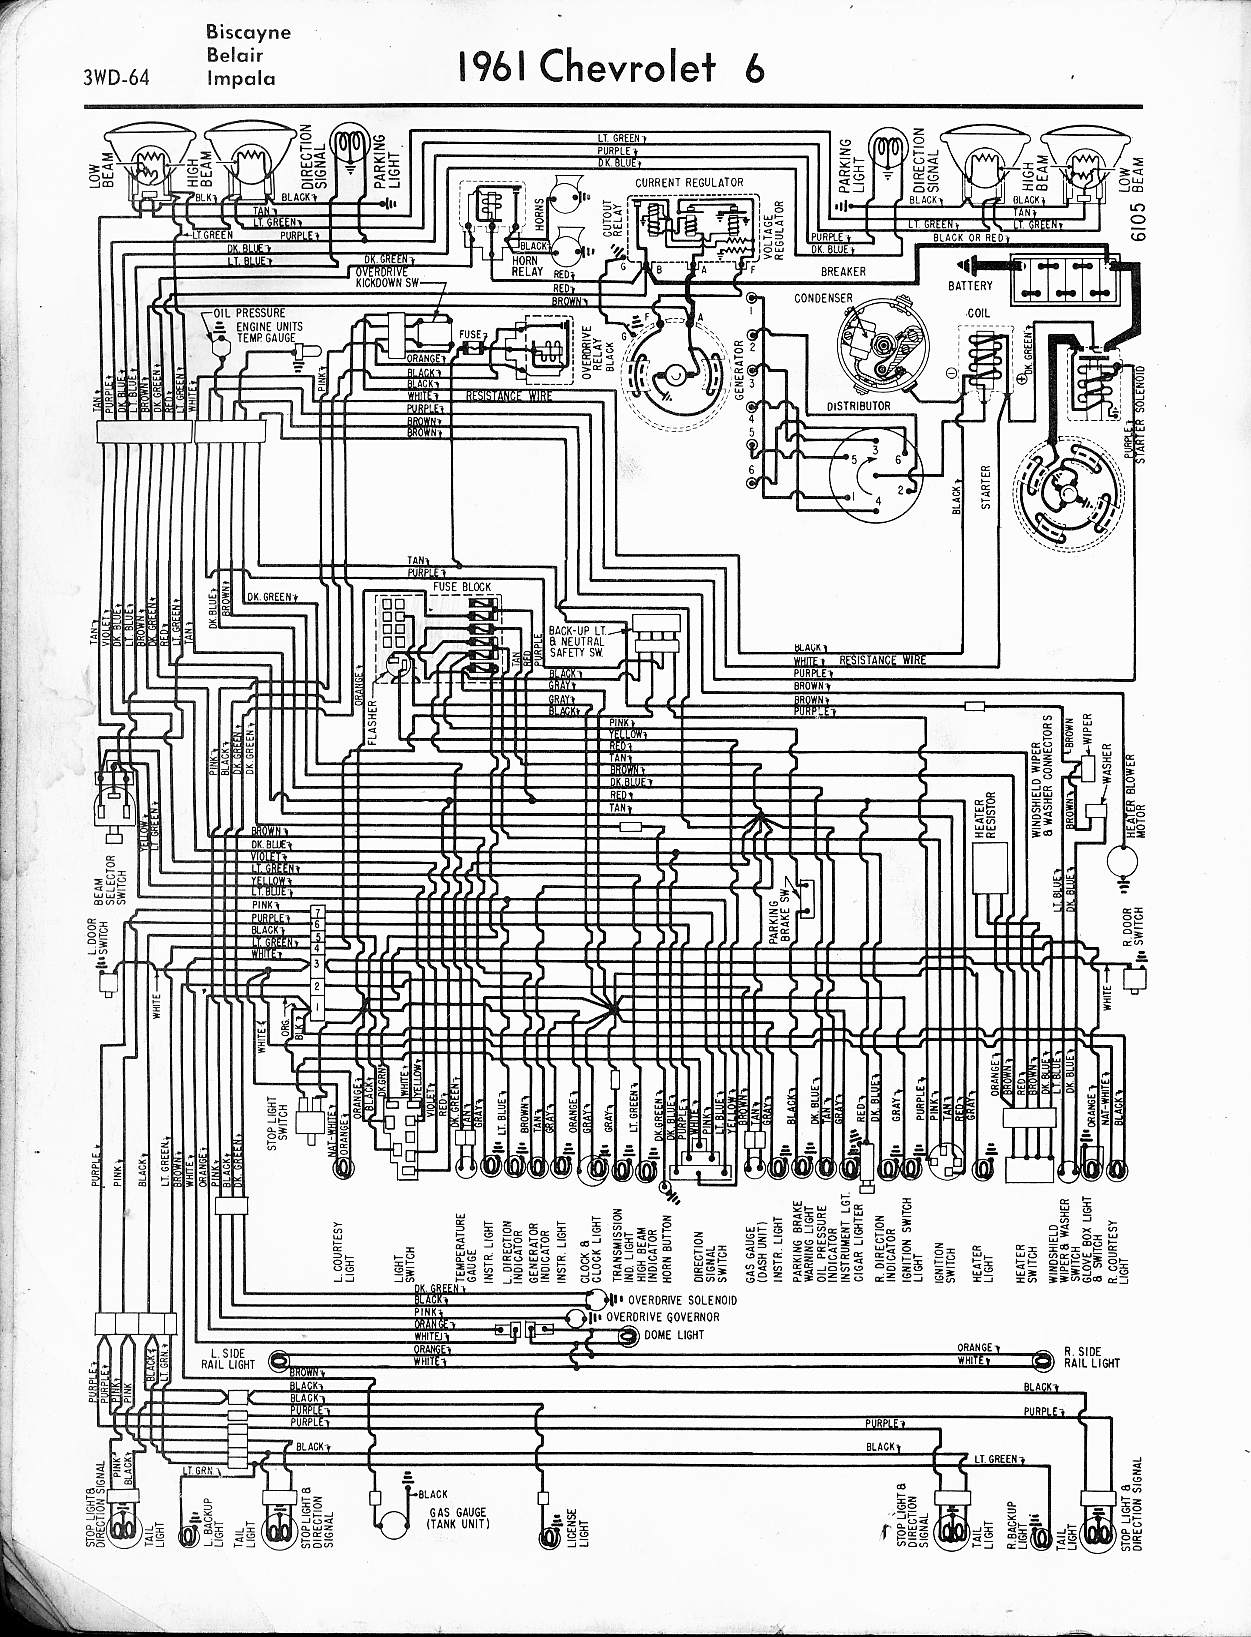 hight resolution of 57 65 chevy wiring diagrams wiring diagram for 1957 chevrolet bel air biscayne belair